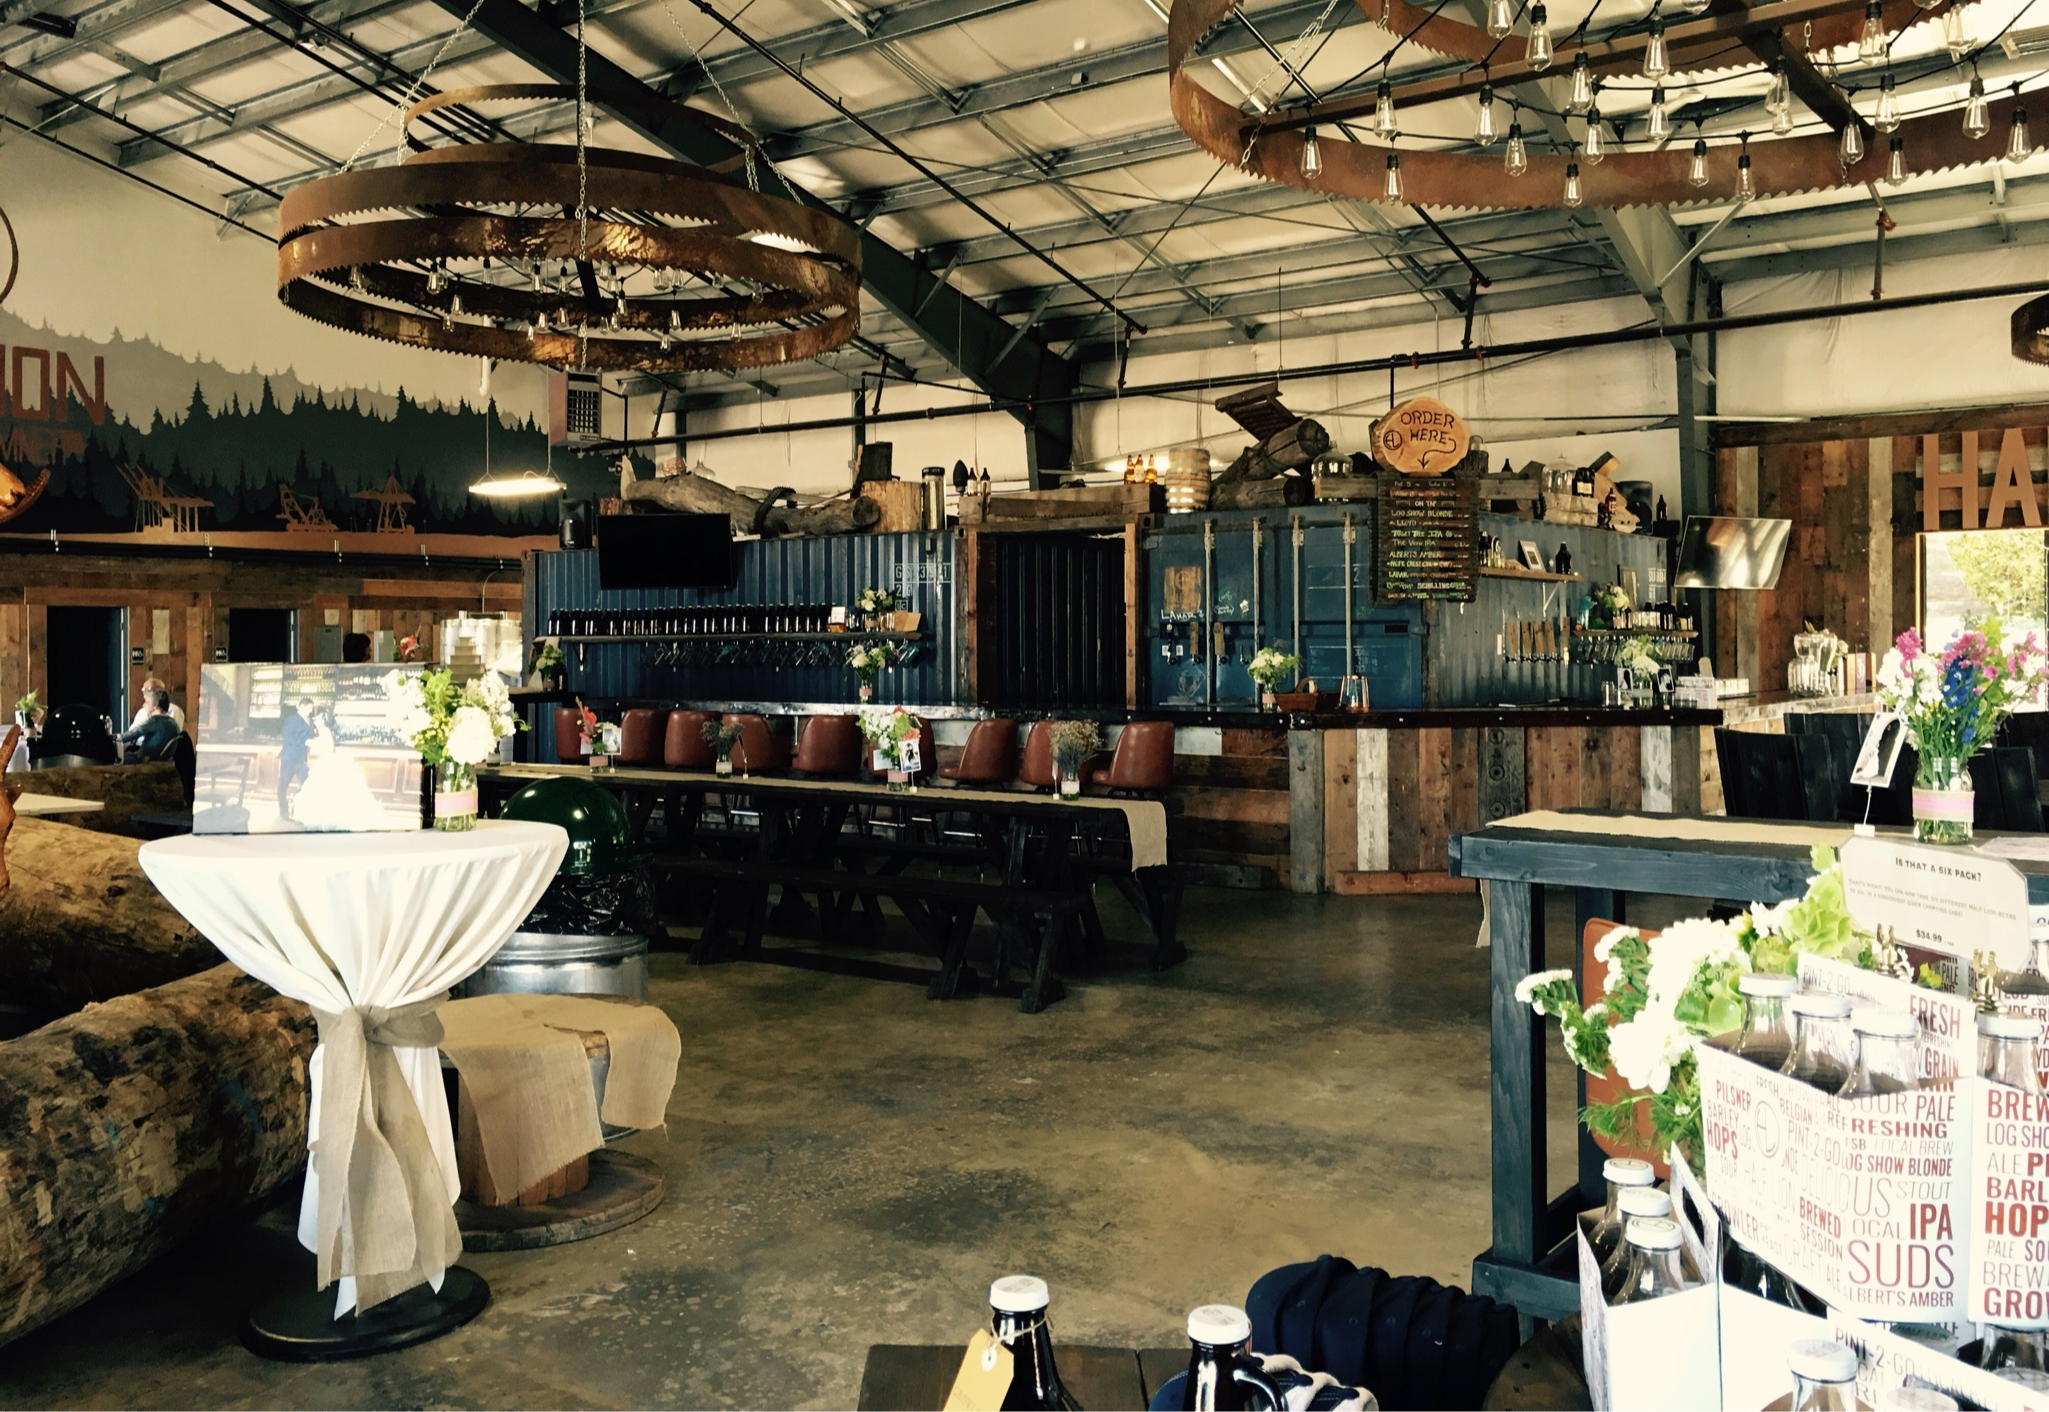 Full Facility Private Event - Brewery